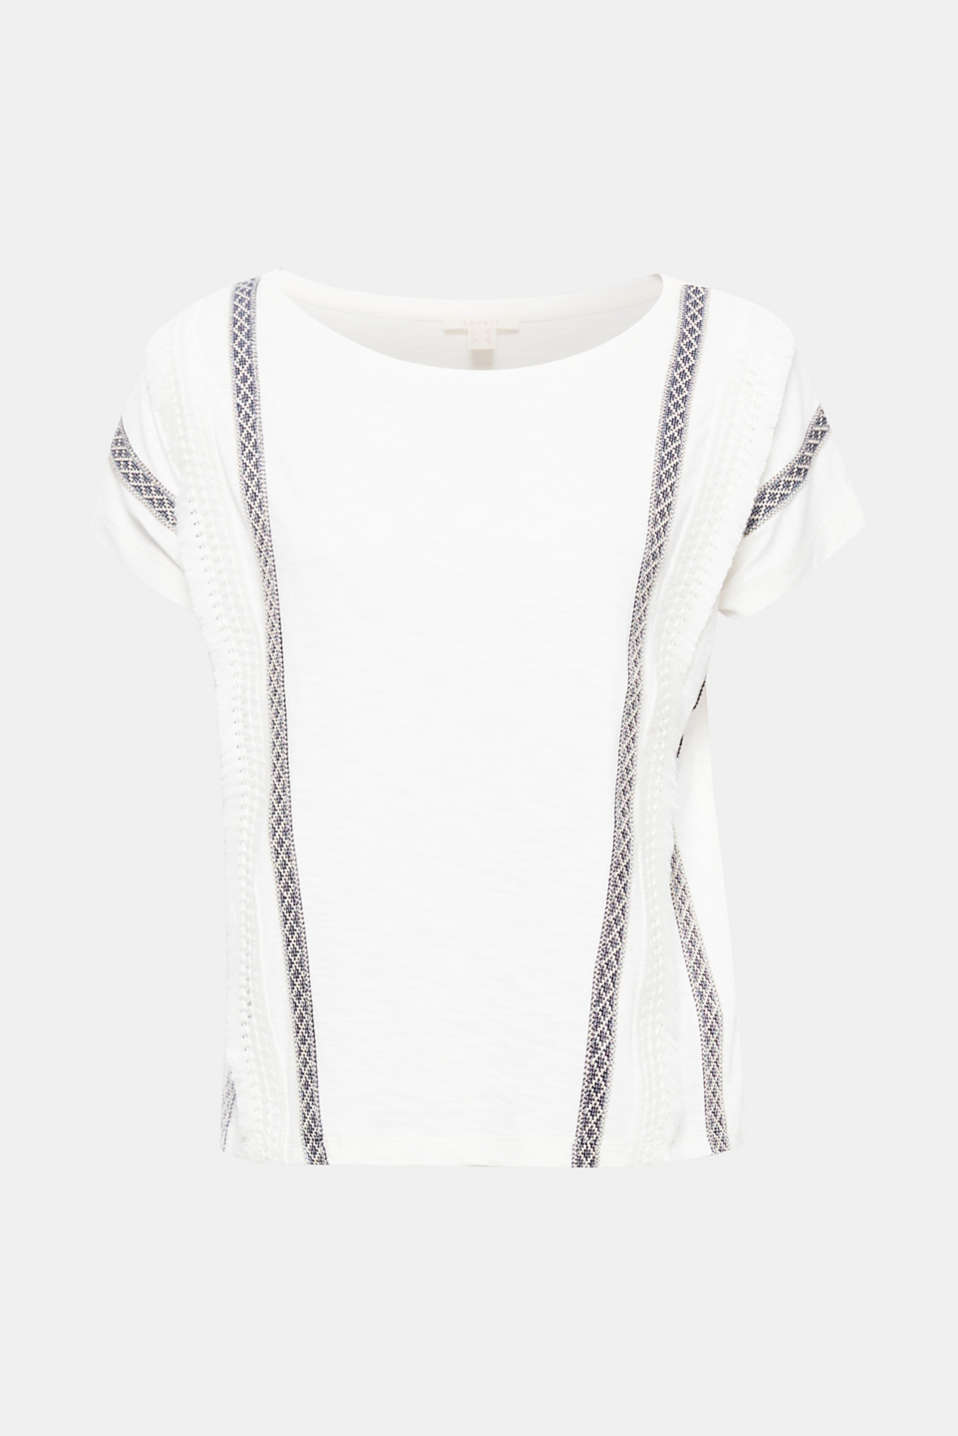 This short, boxy T-shirt in textured slub jersey fabric with an appliquéd border will draw eyes to you!